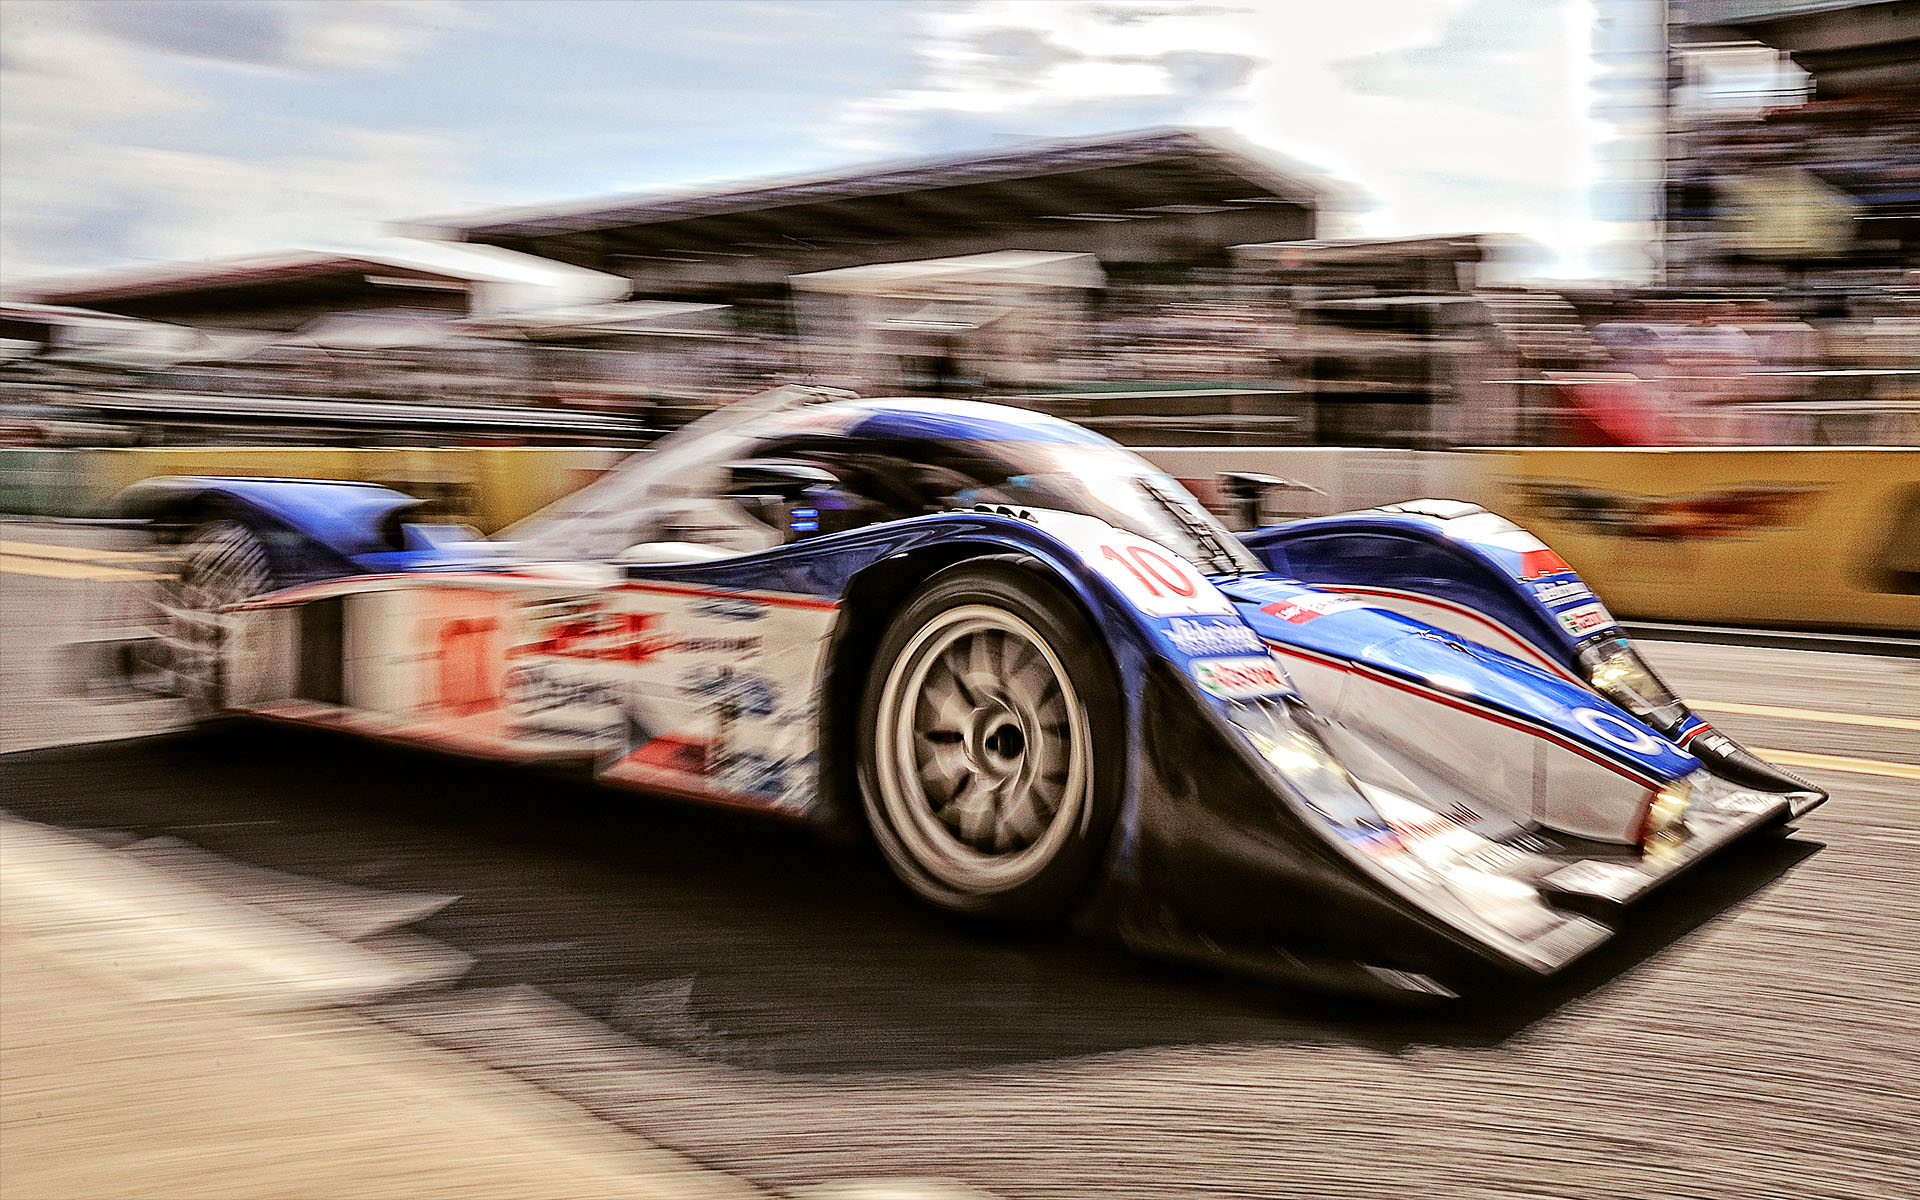 Le Mans Editorial Photoshoot by Blair Bunting